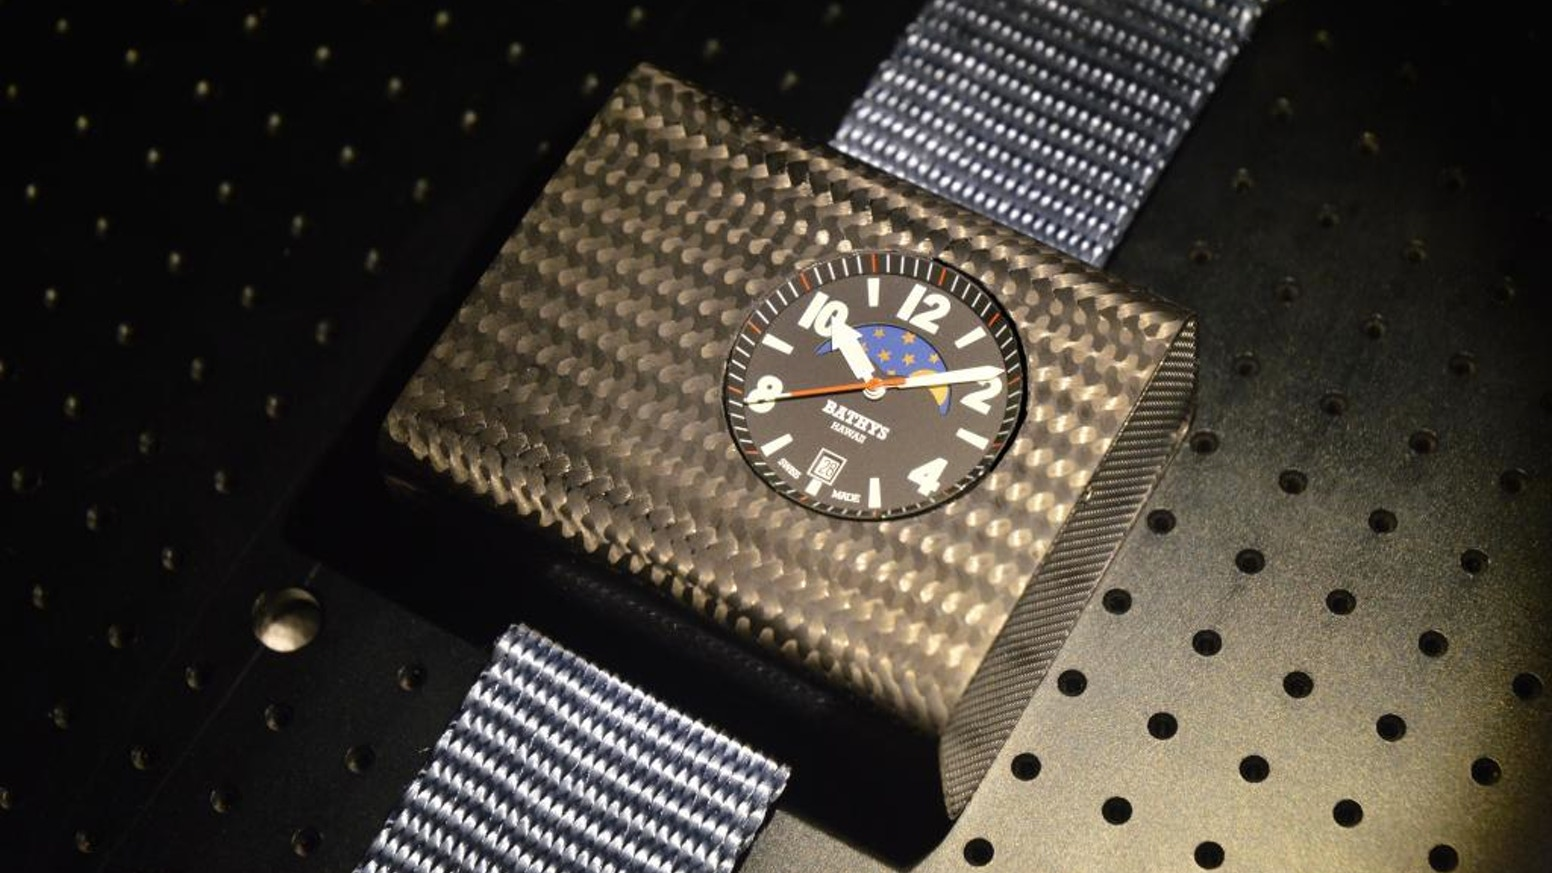 The World's First True Atomic Wristwatch - The Cesium 133 by John